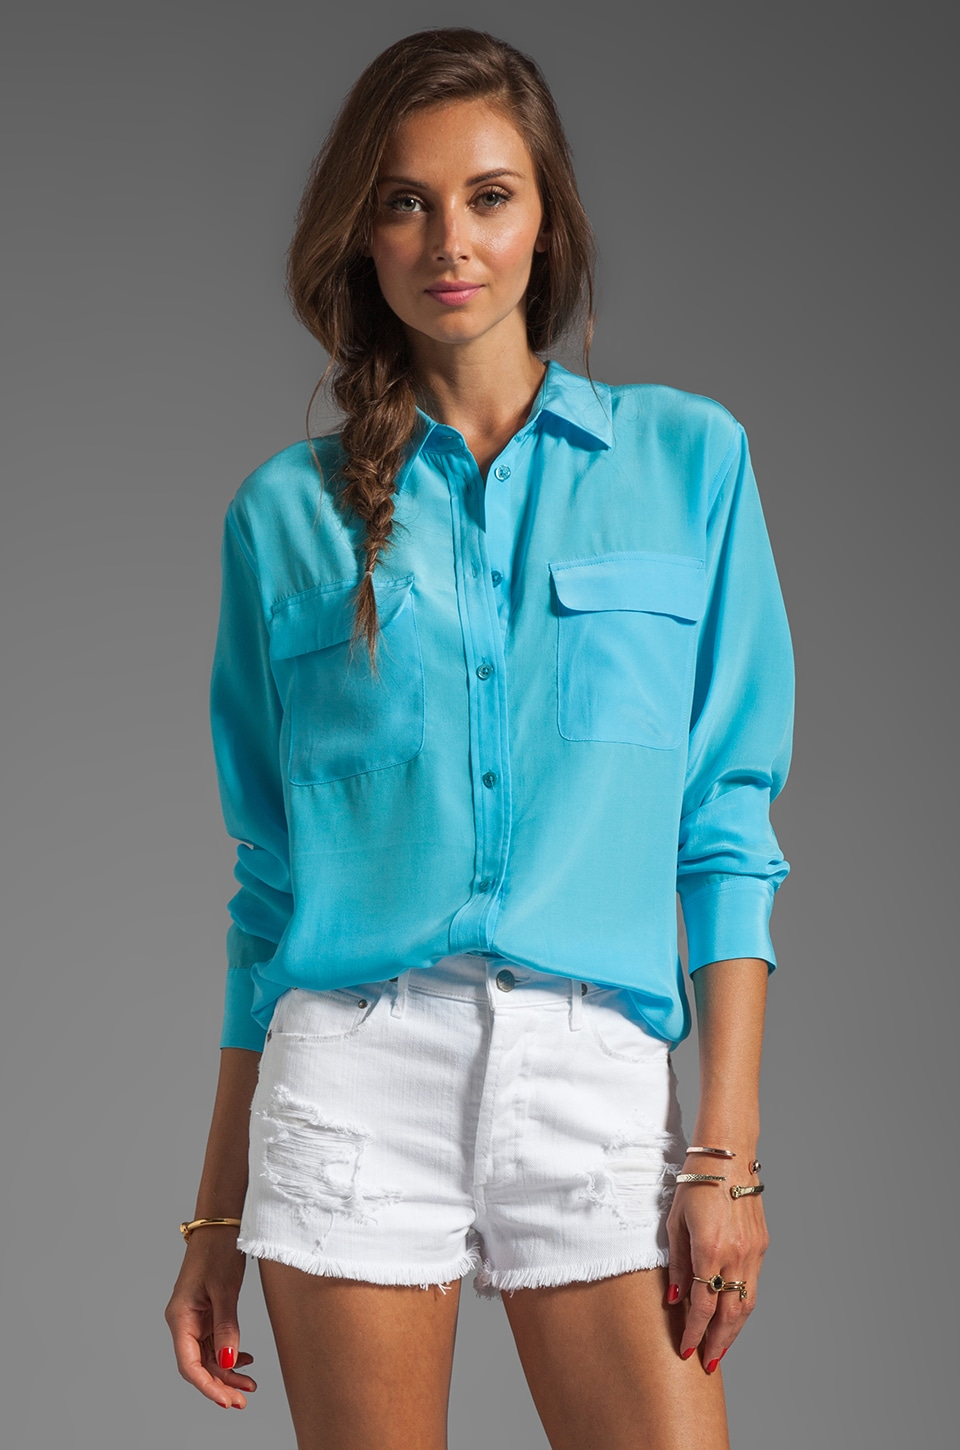 Equipment Signature Blouse in Deep Turquoise